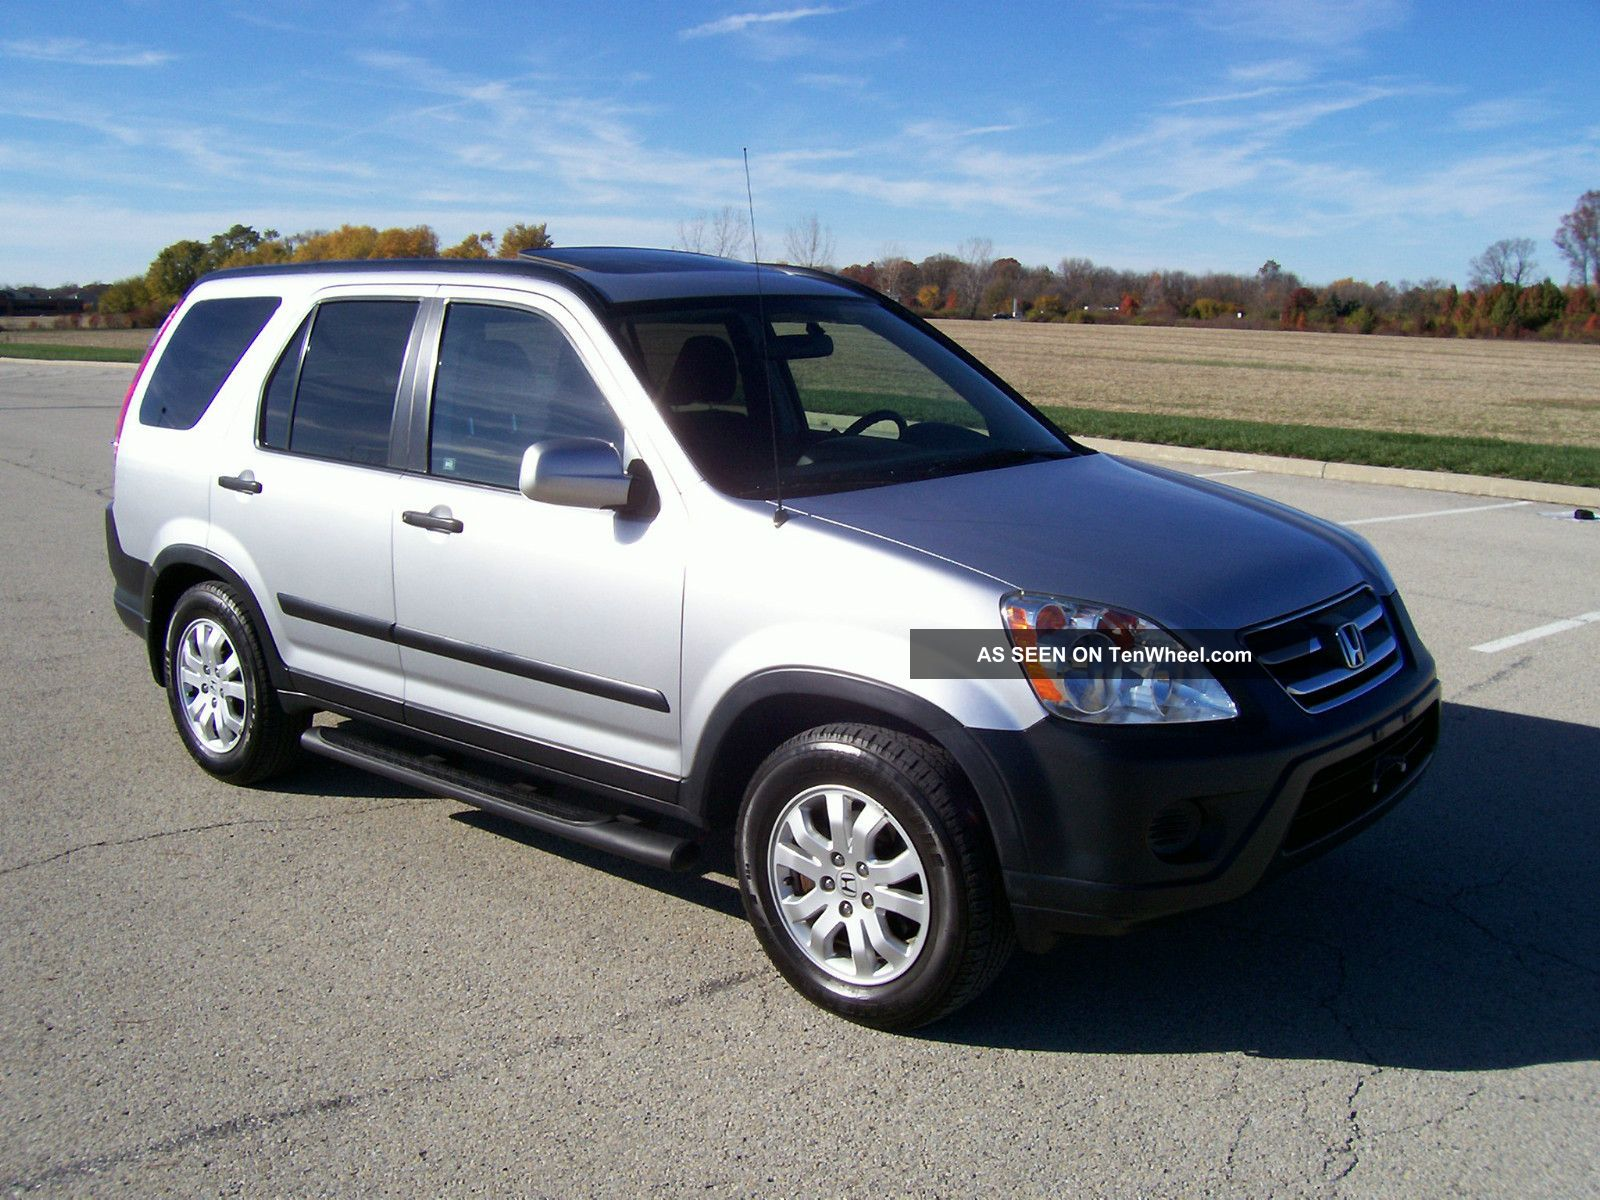 2006 Honda Cr V Ex 4wd Loaded Ex Awd Crv Make Offer CR V photo  #2962A2